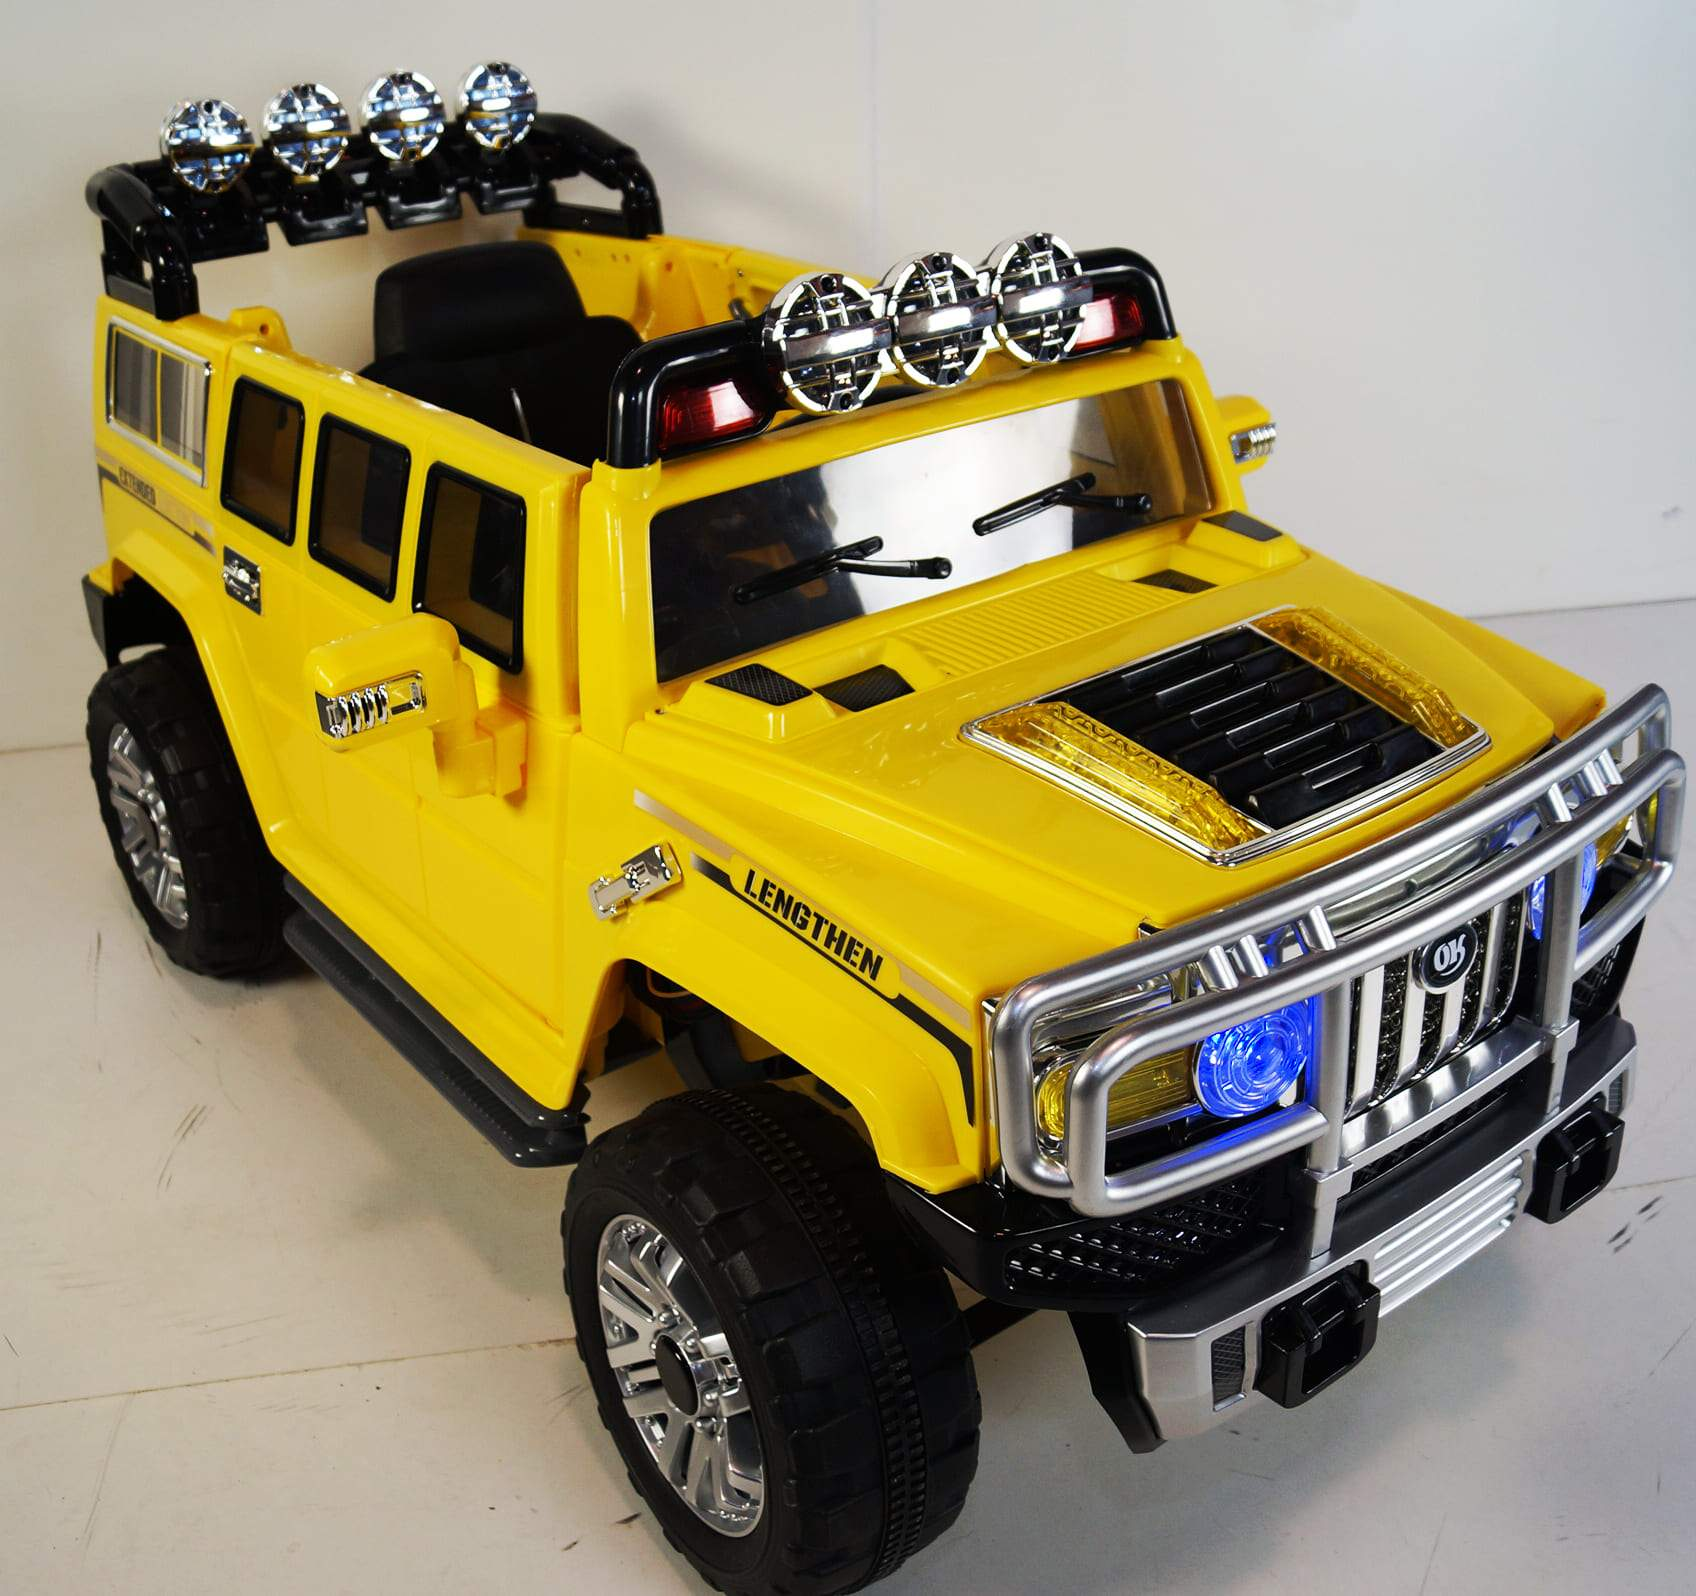 HUMMER H2 INSPIRED 12V KIDS ELECTRIC RIDE-ON CAR SUV WITH